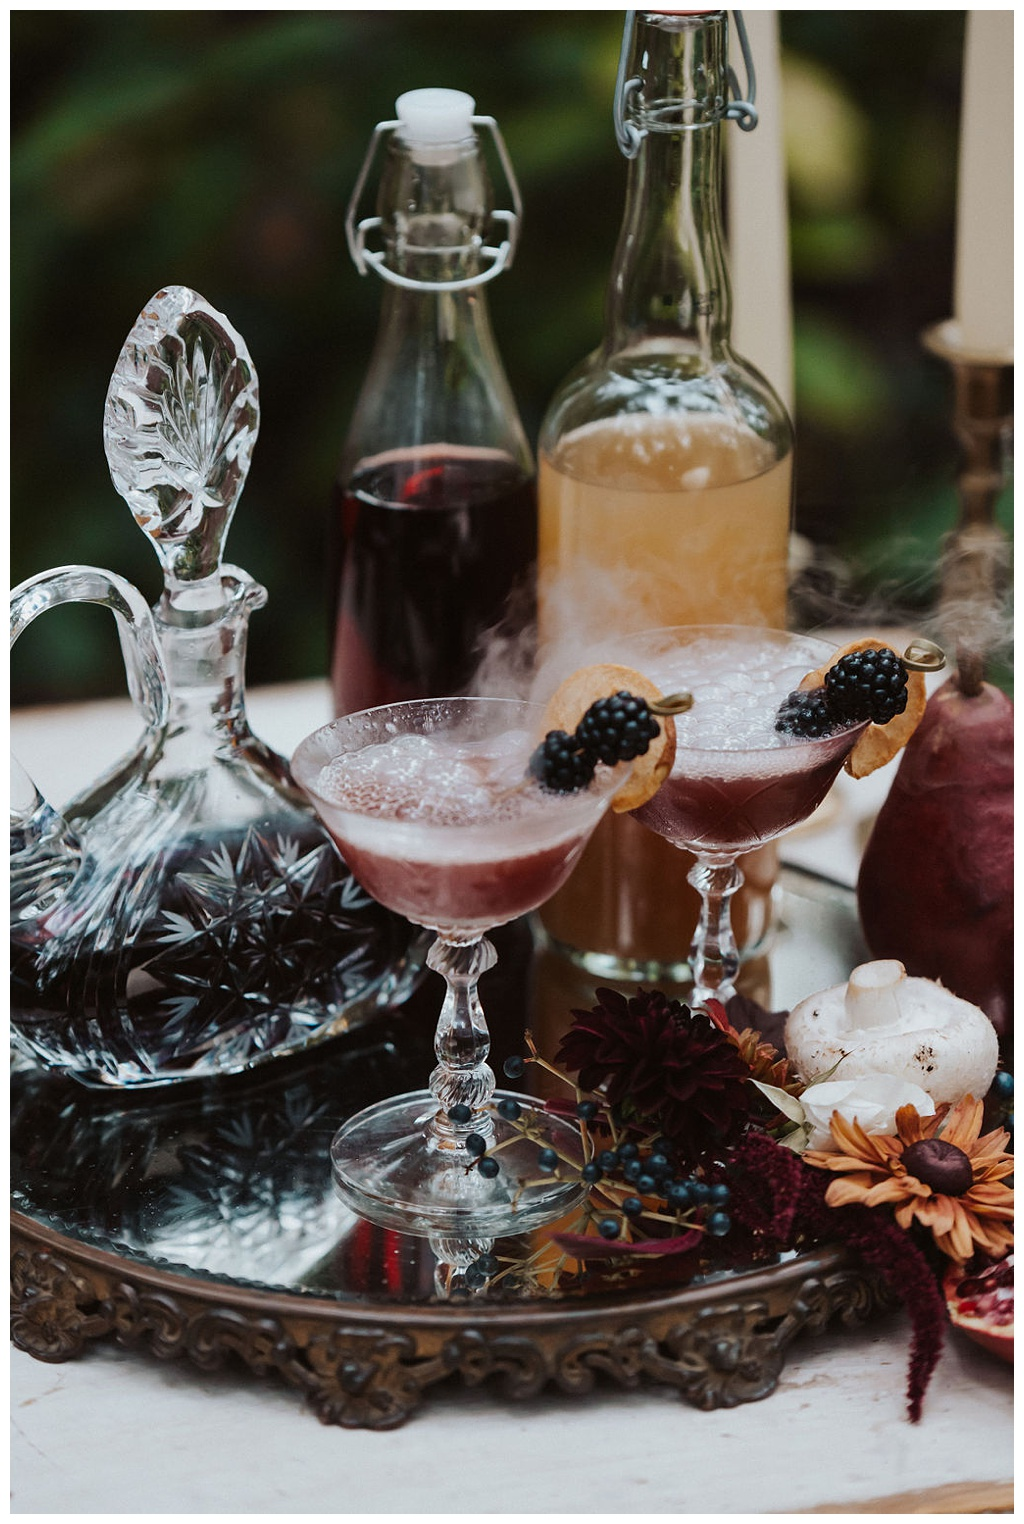 A table with cocktail goblets smoking with dry ice, as well as a vintage decanter and flowers and mushrooms.